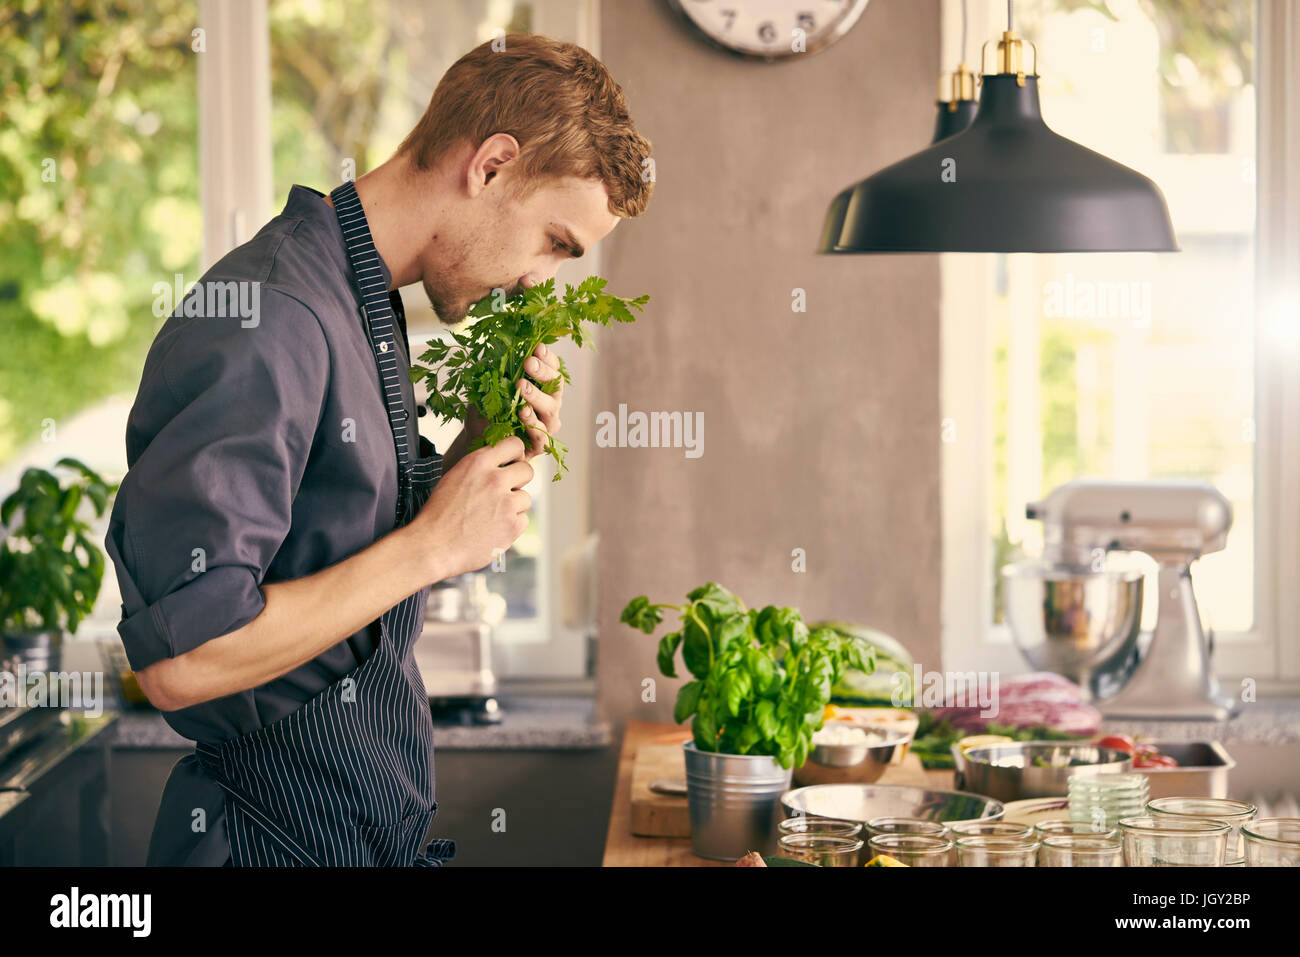 Chefs buying fresh herbs - Chef Smelling Fresh Herbs